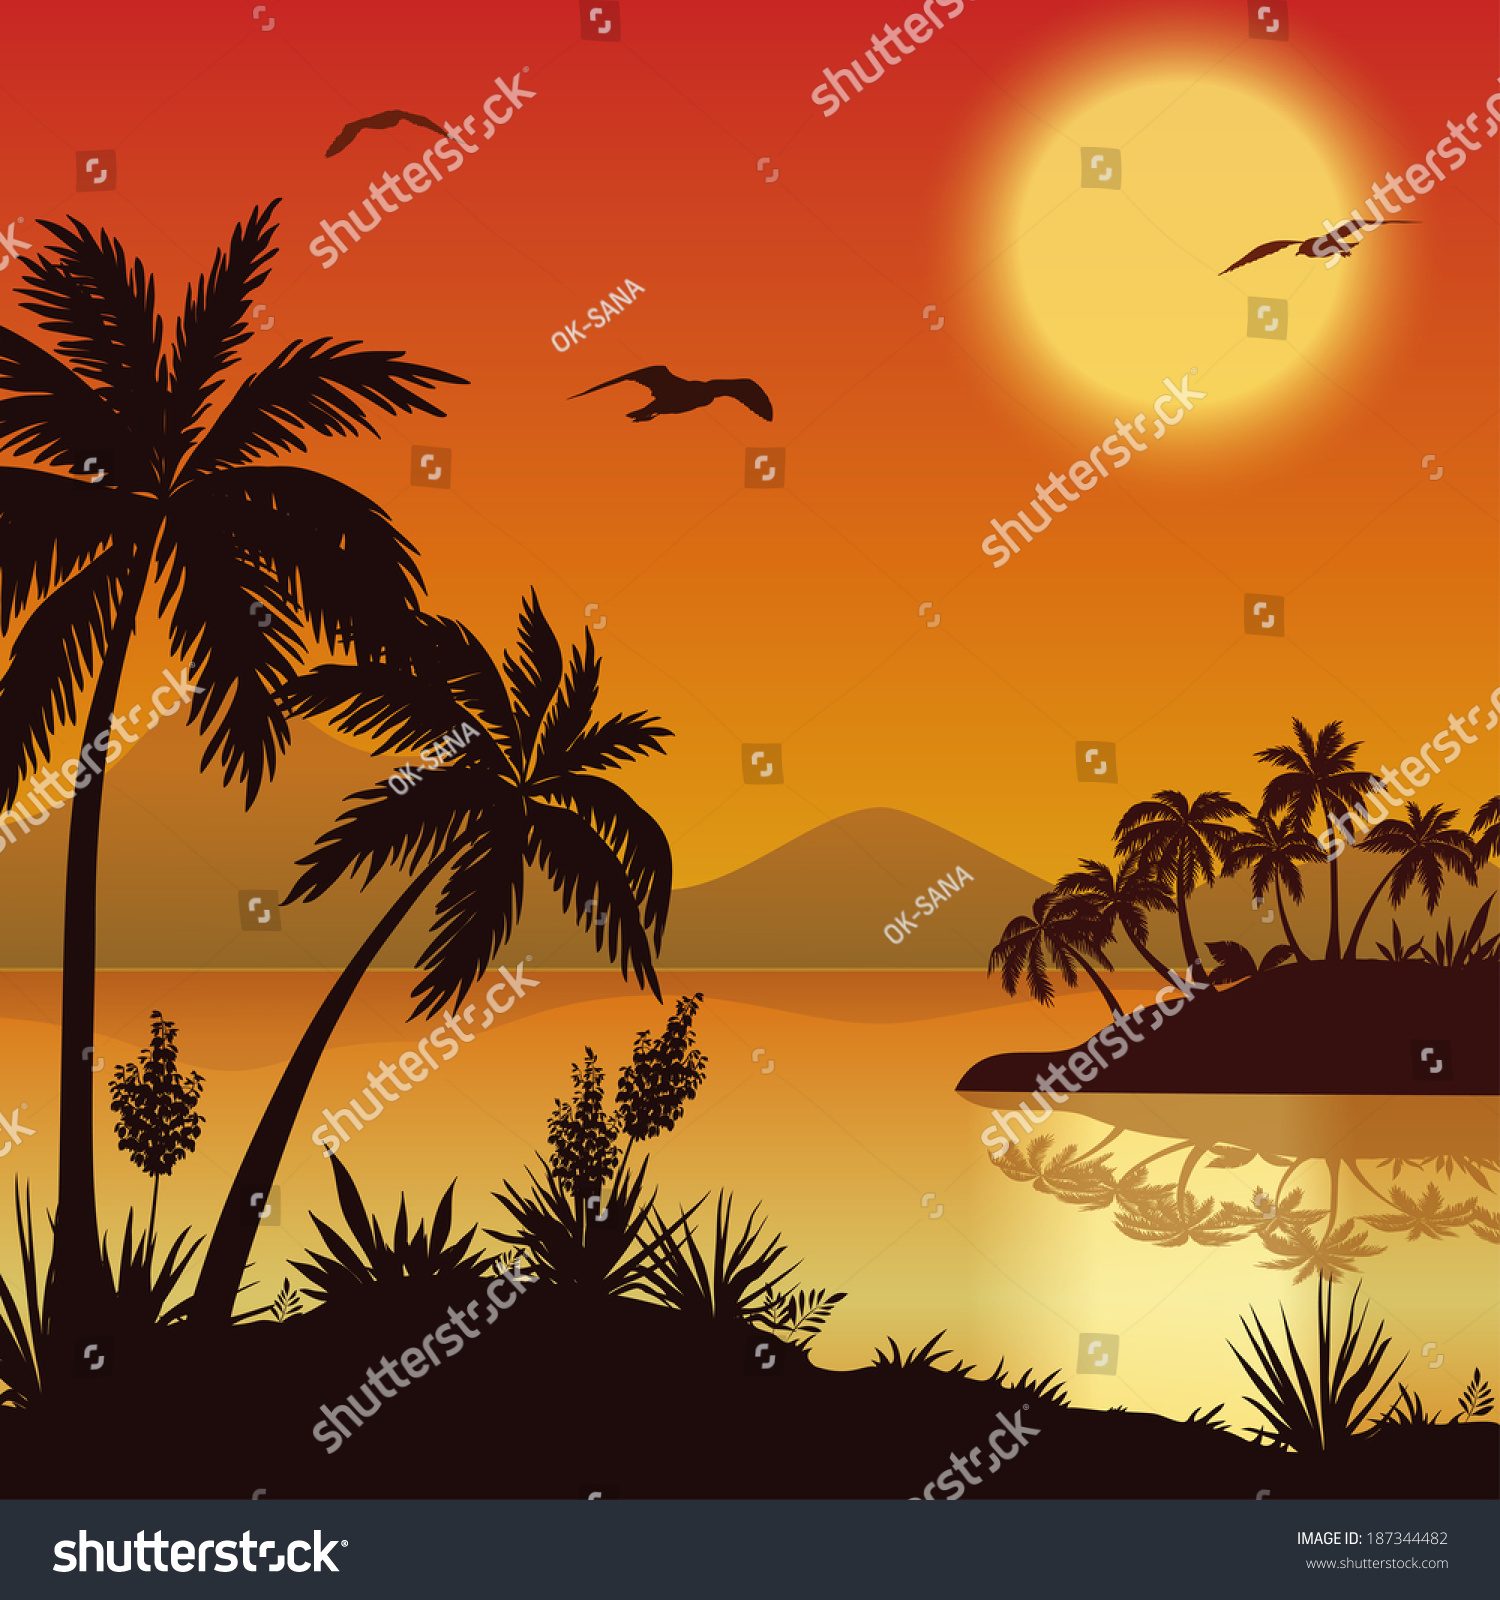 Tropical Landscape Sea Islands With Palm Trees And Flowers